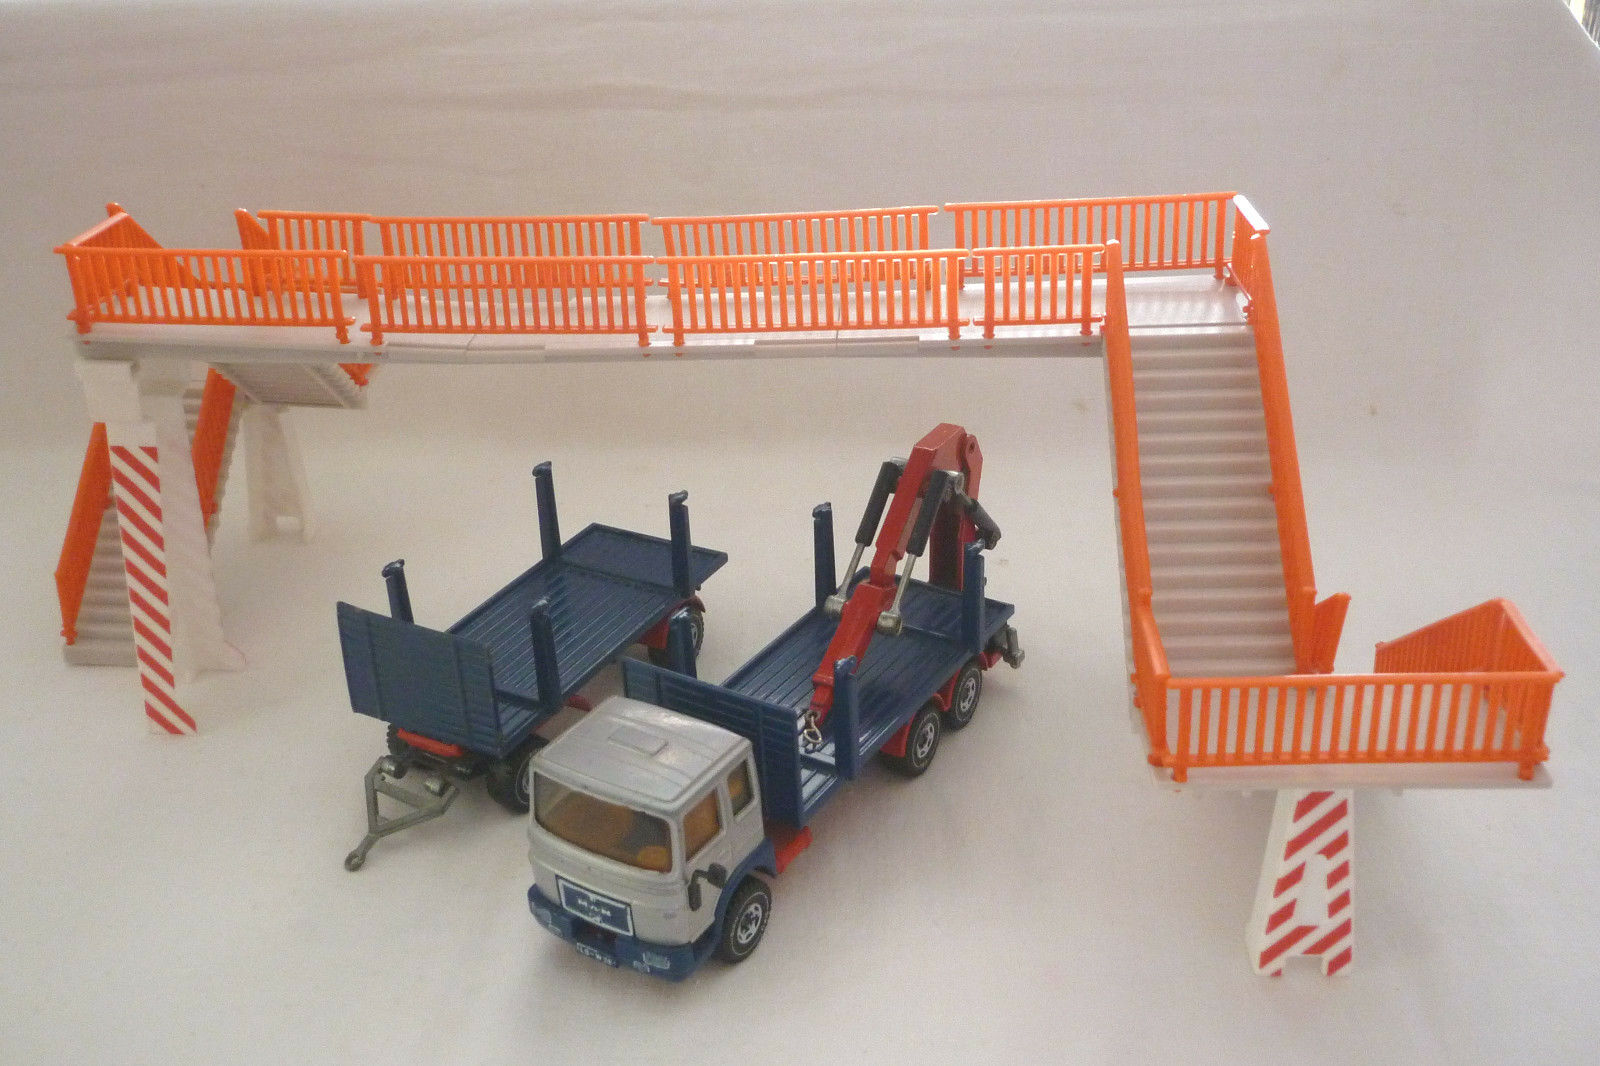 Siku   Model - Lkw-Zug with Pedestrian Bridge - Man 8156 F - 3810 - (9.si-32)